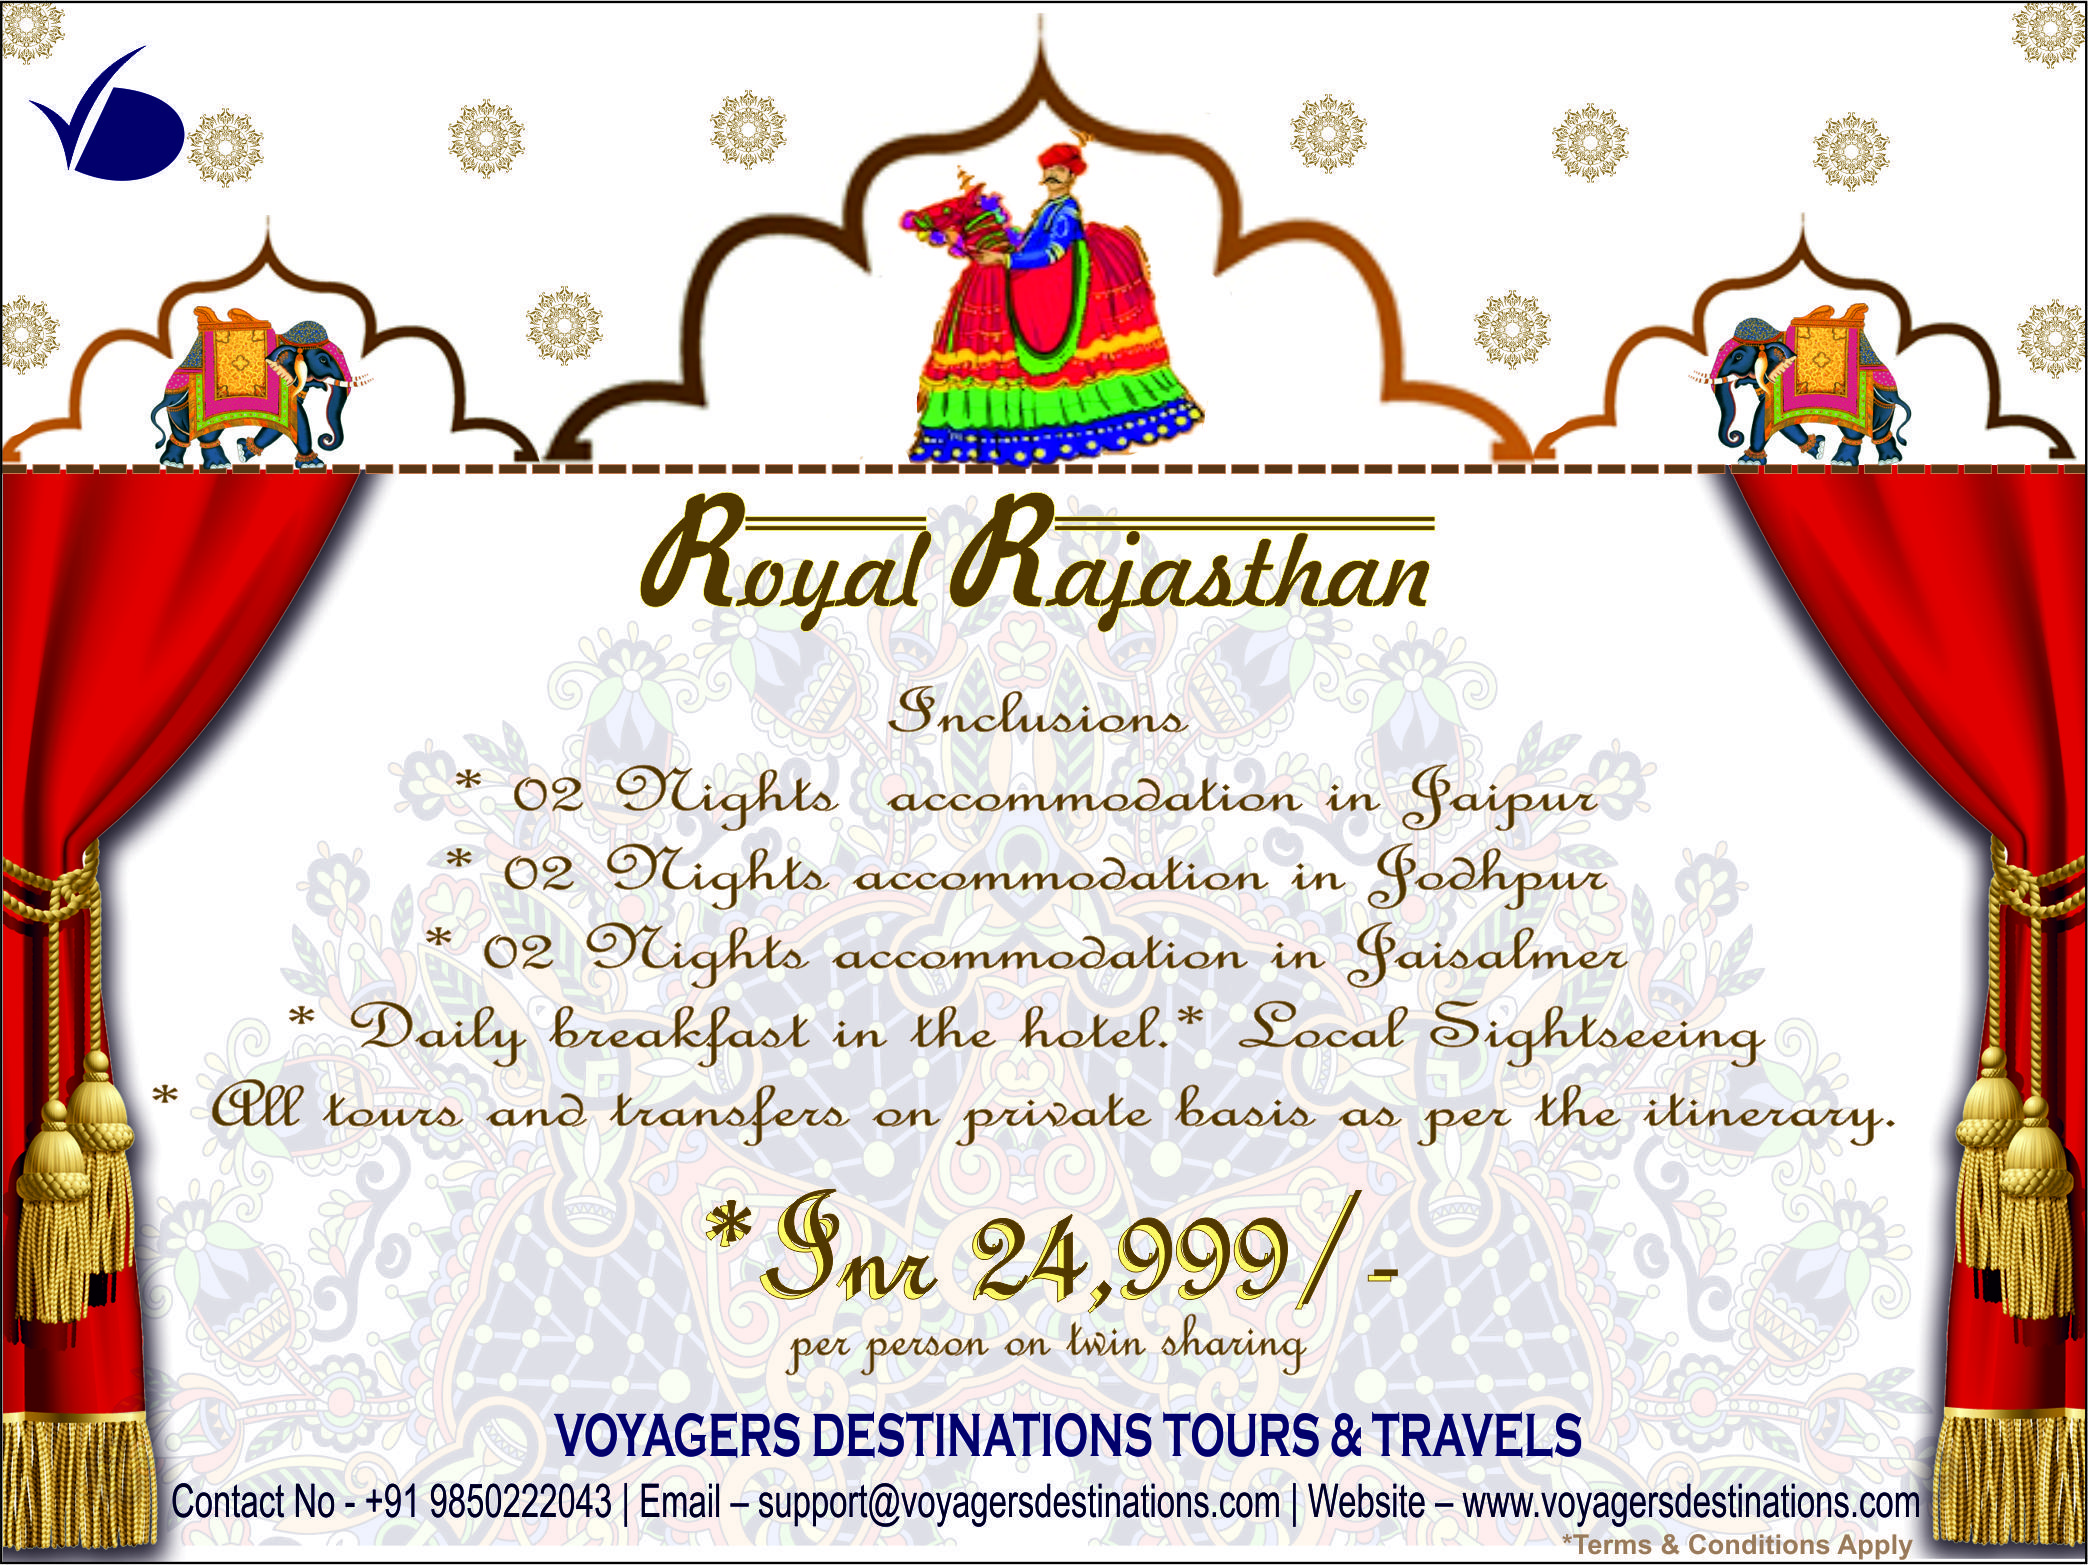 Glimpses of royal rajasthan package affordable price on